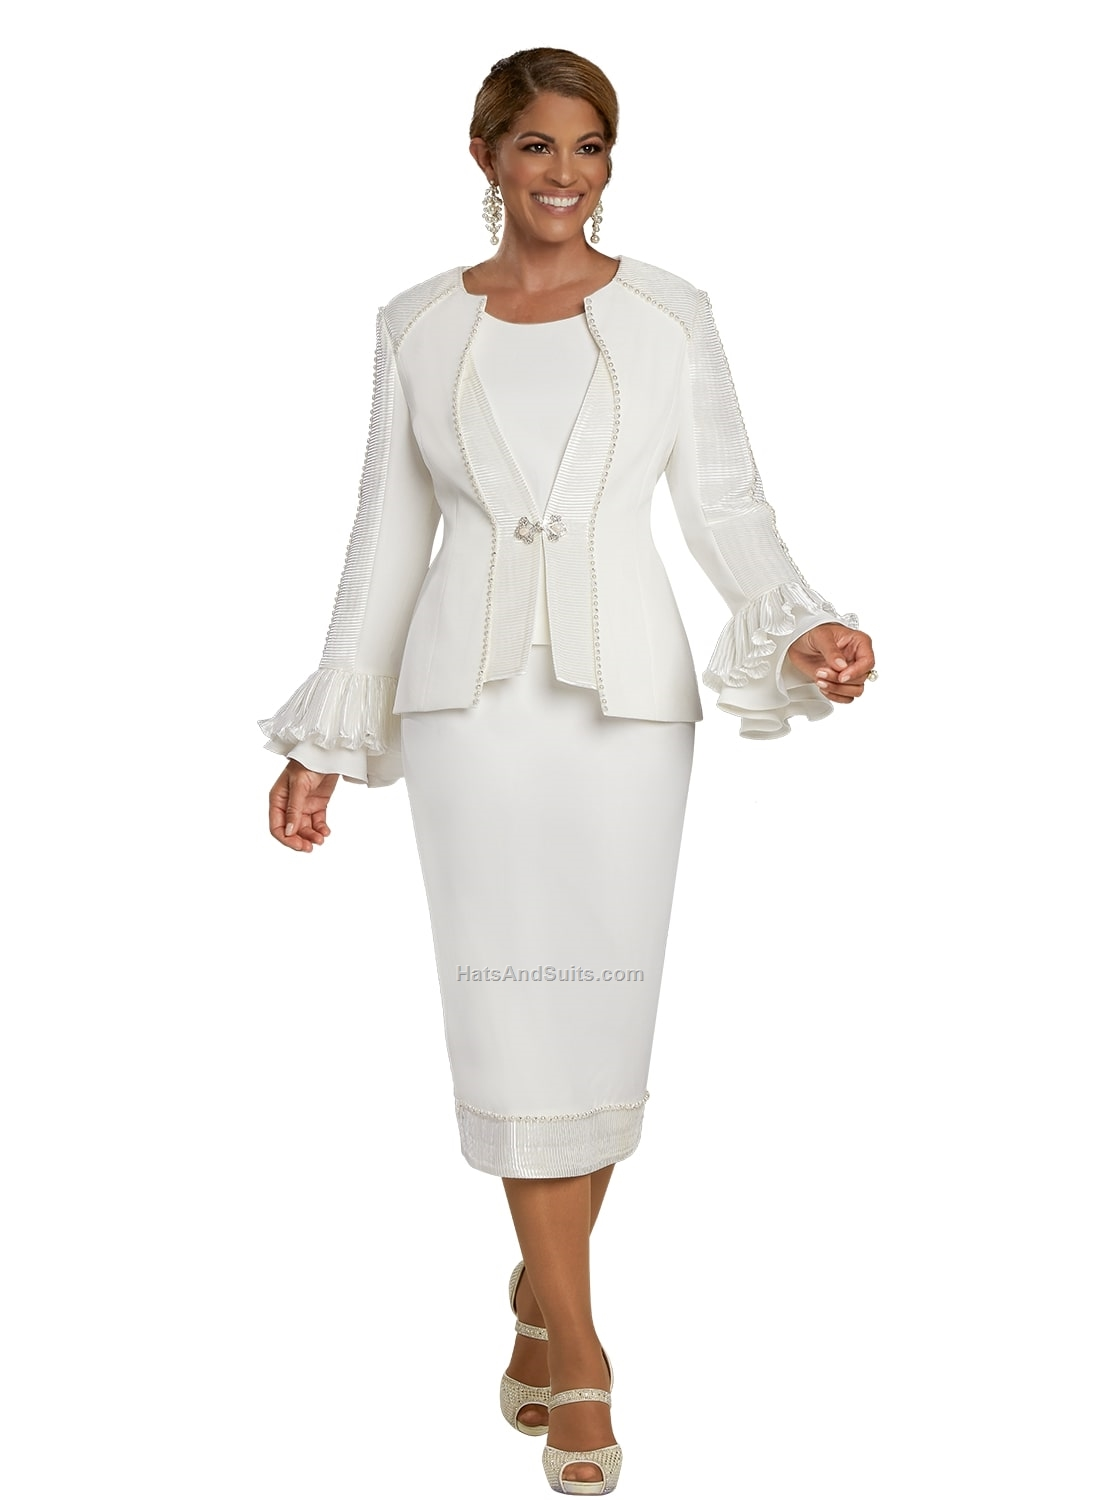 11925 Donna Vinci 3 Pc. Jacket/Cami & Skirt Set. SP21